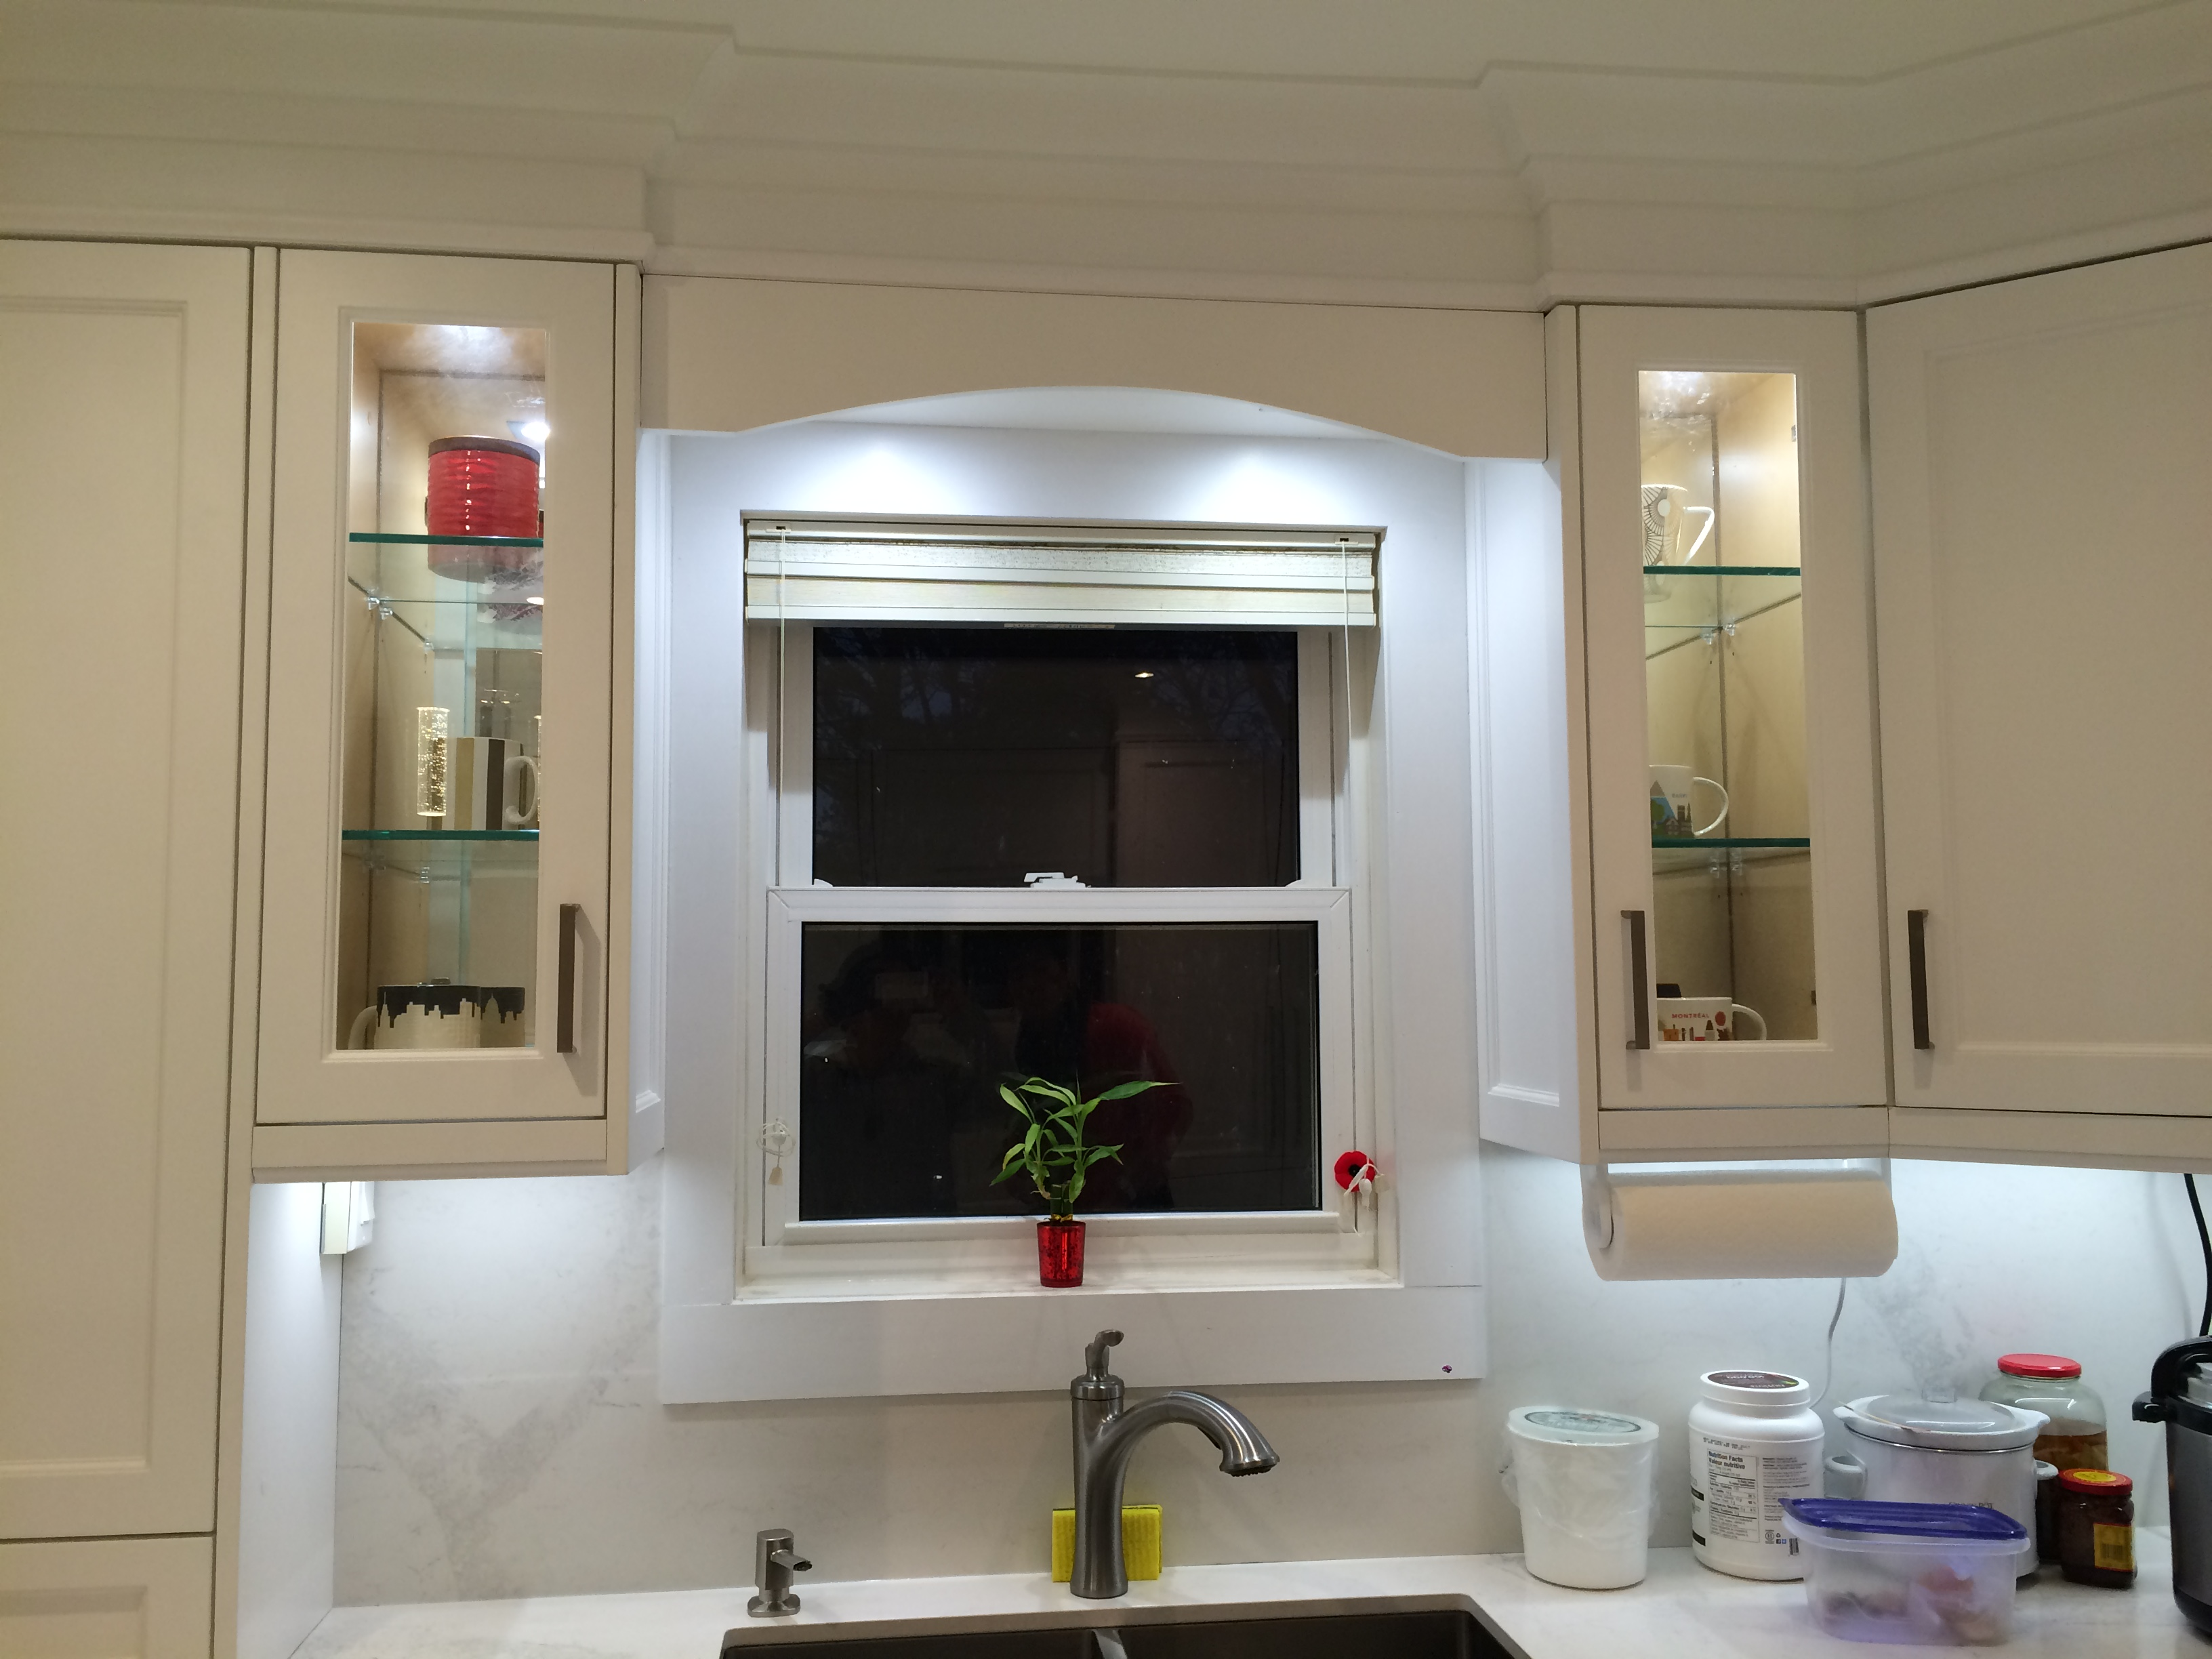 Kitchen cabinetry picture 4